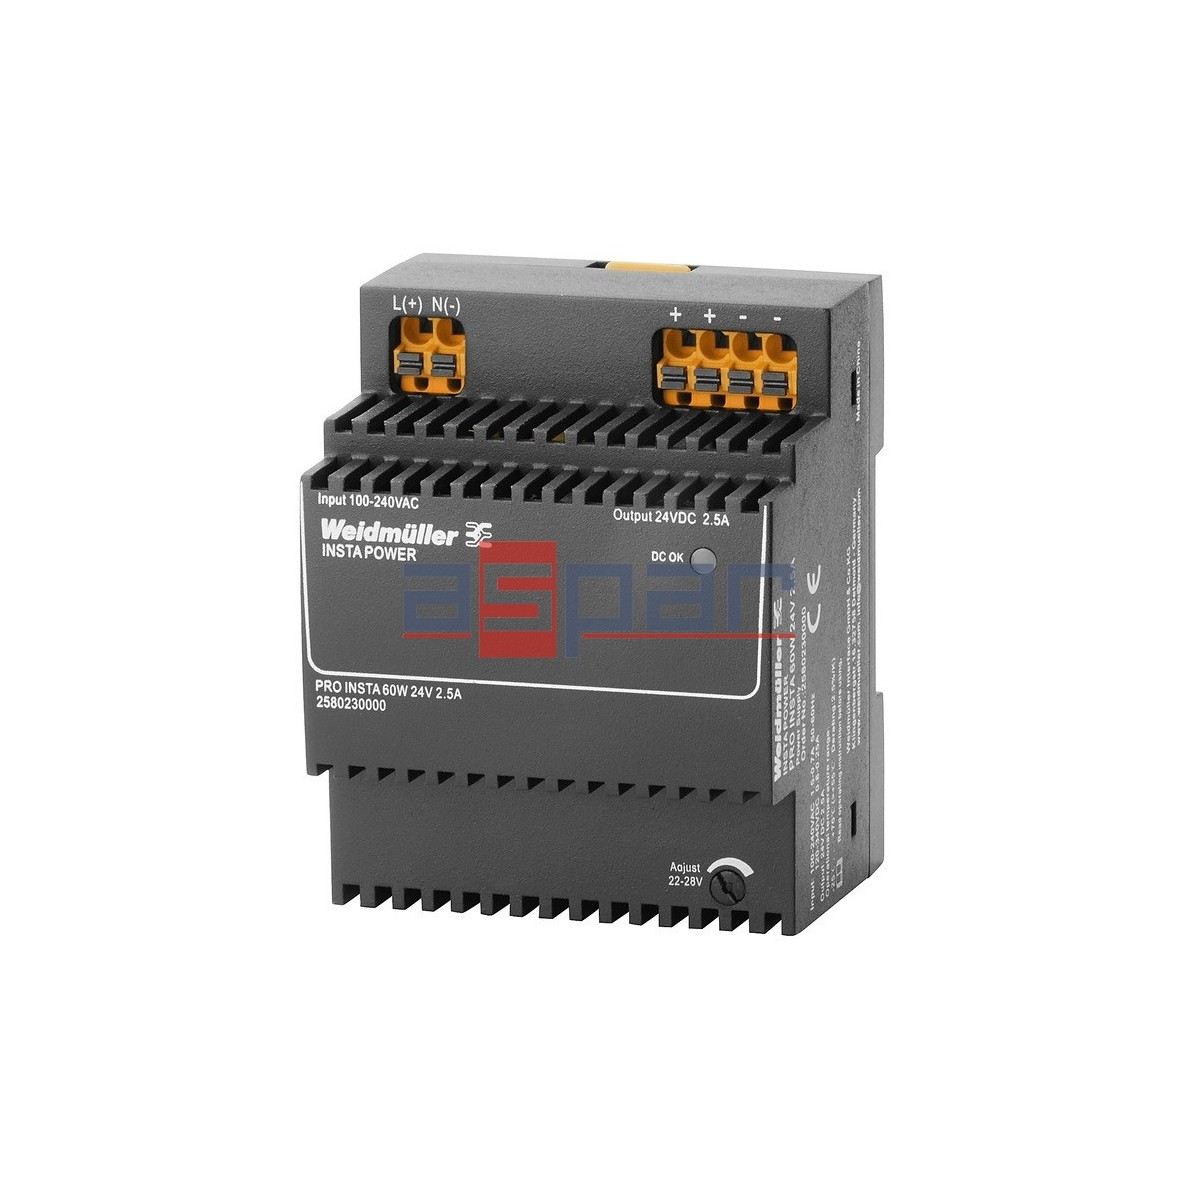 switch-mode power supply unit, 24 V, PRO INSTA 60W 24V 2.5A